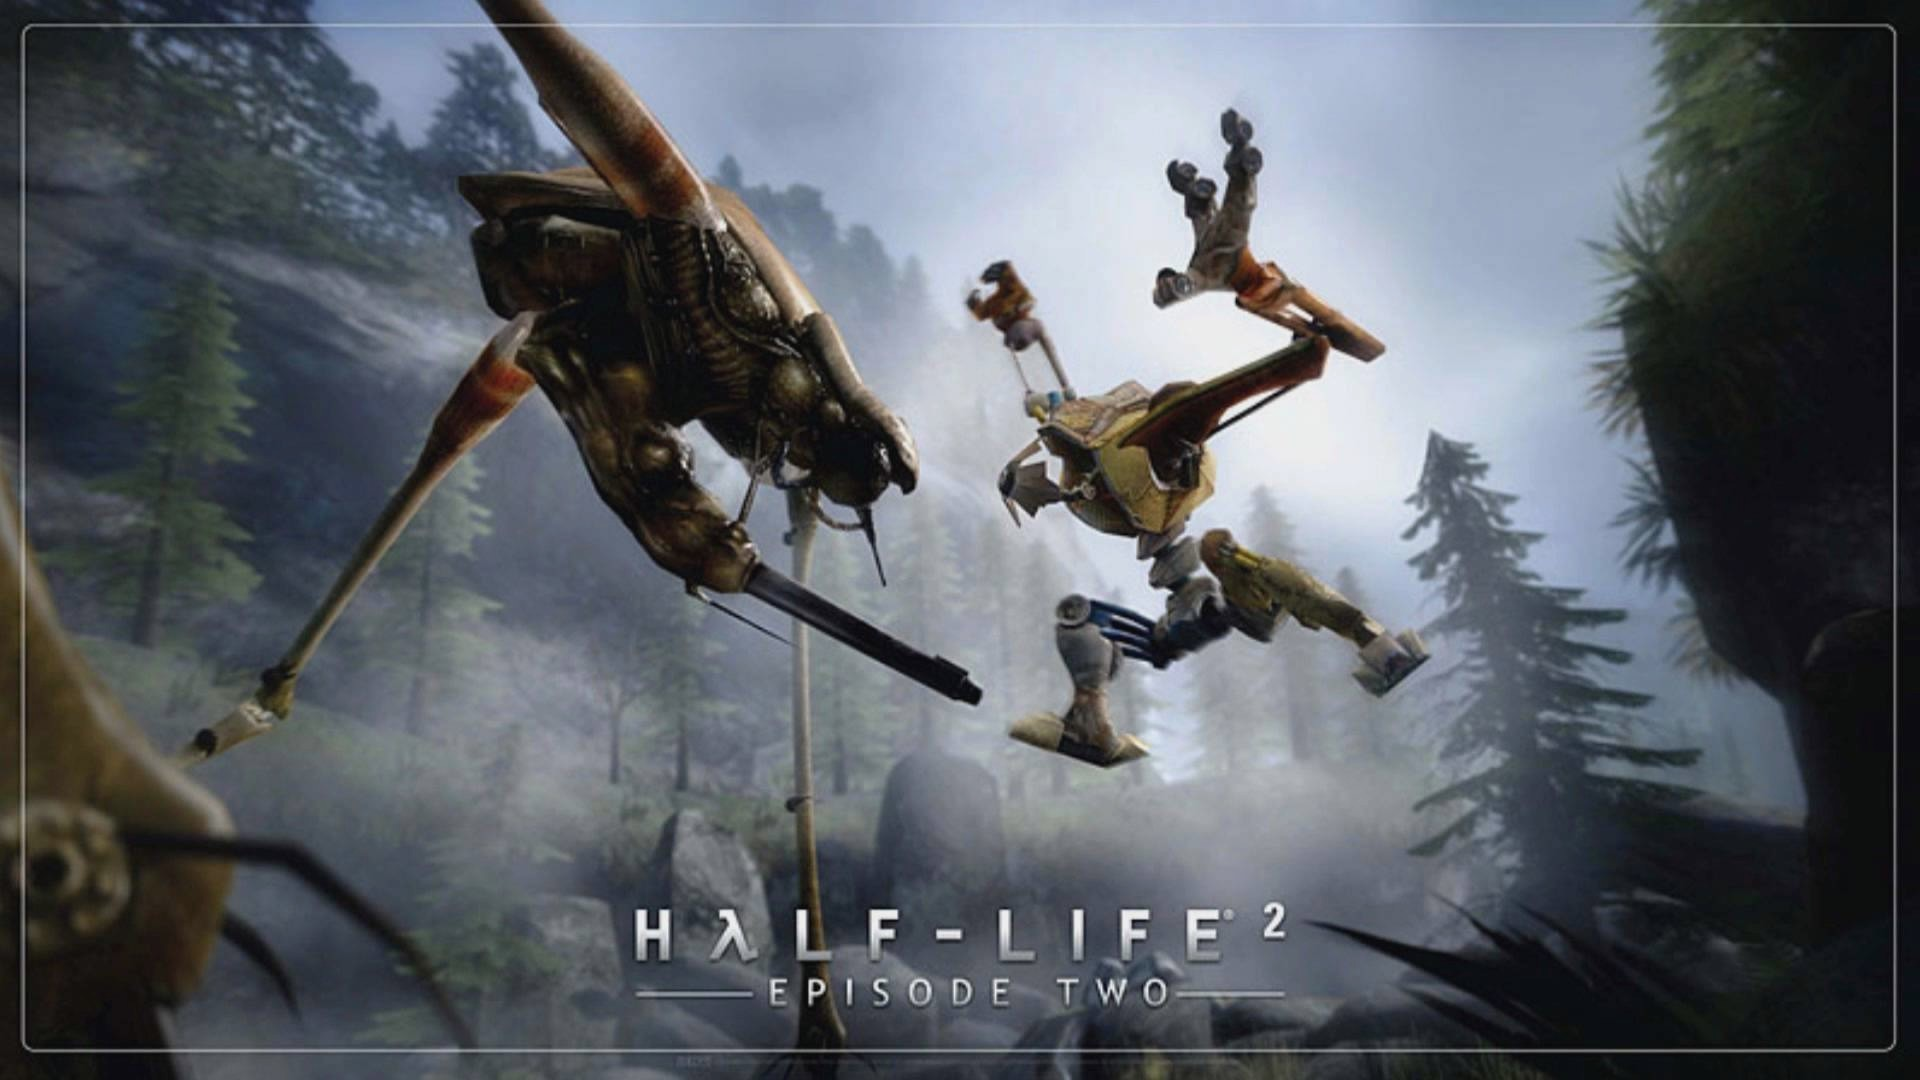 1920x1080 ... Half Life 2 wallpaper ·① Download free beautiful full HD .